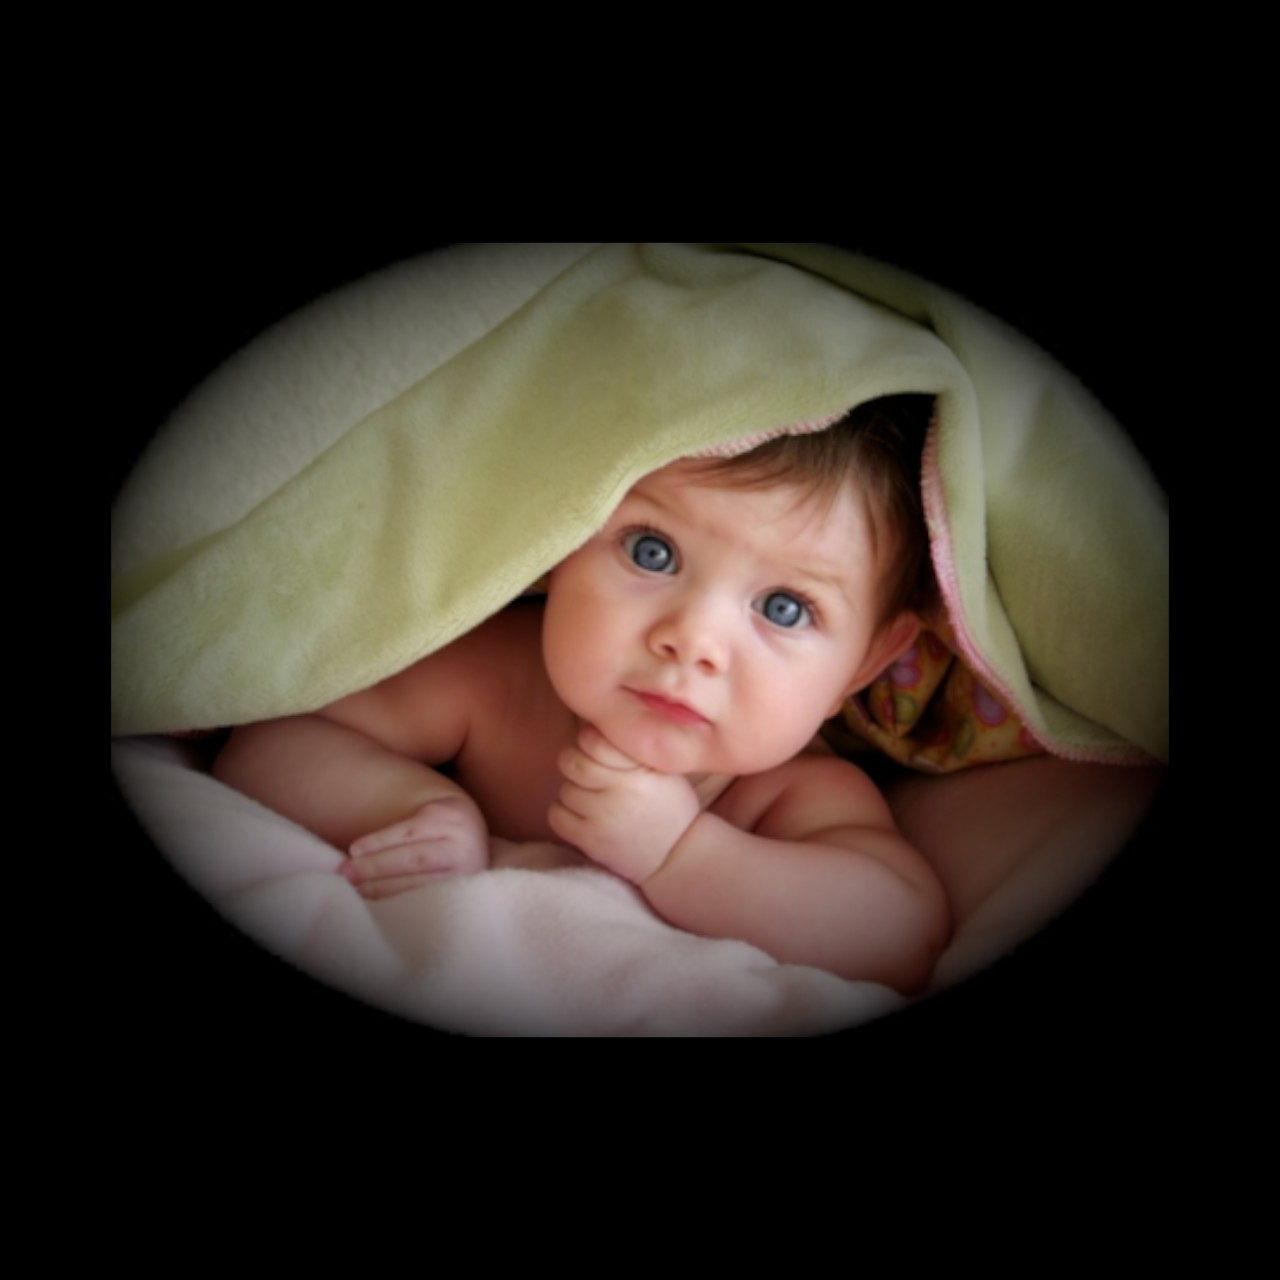 cute baby WhatsApp profile images